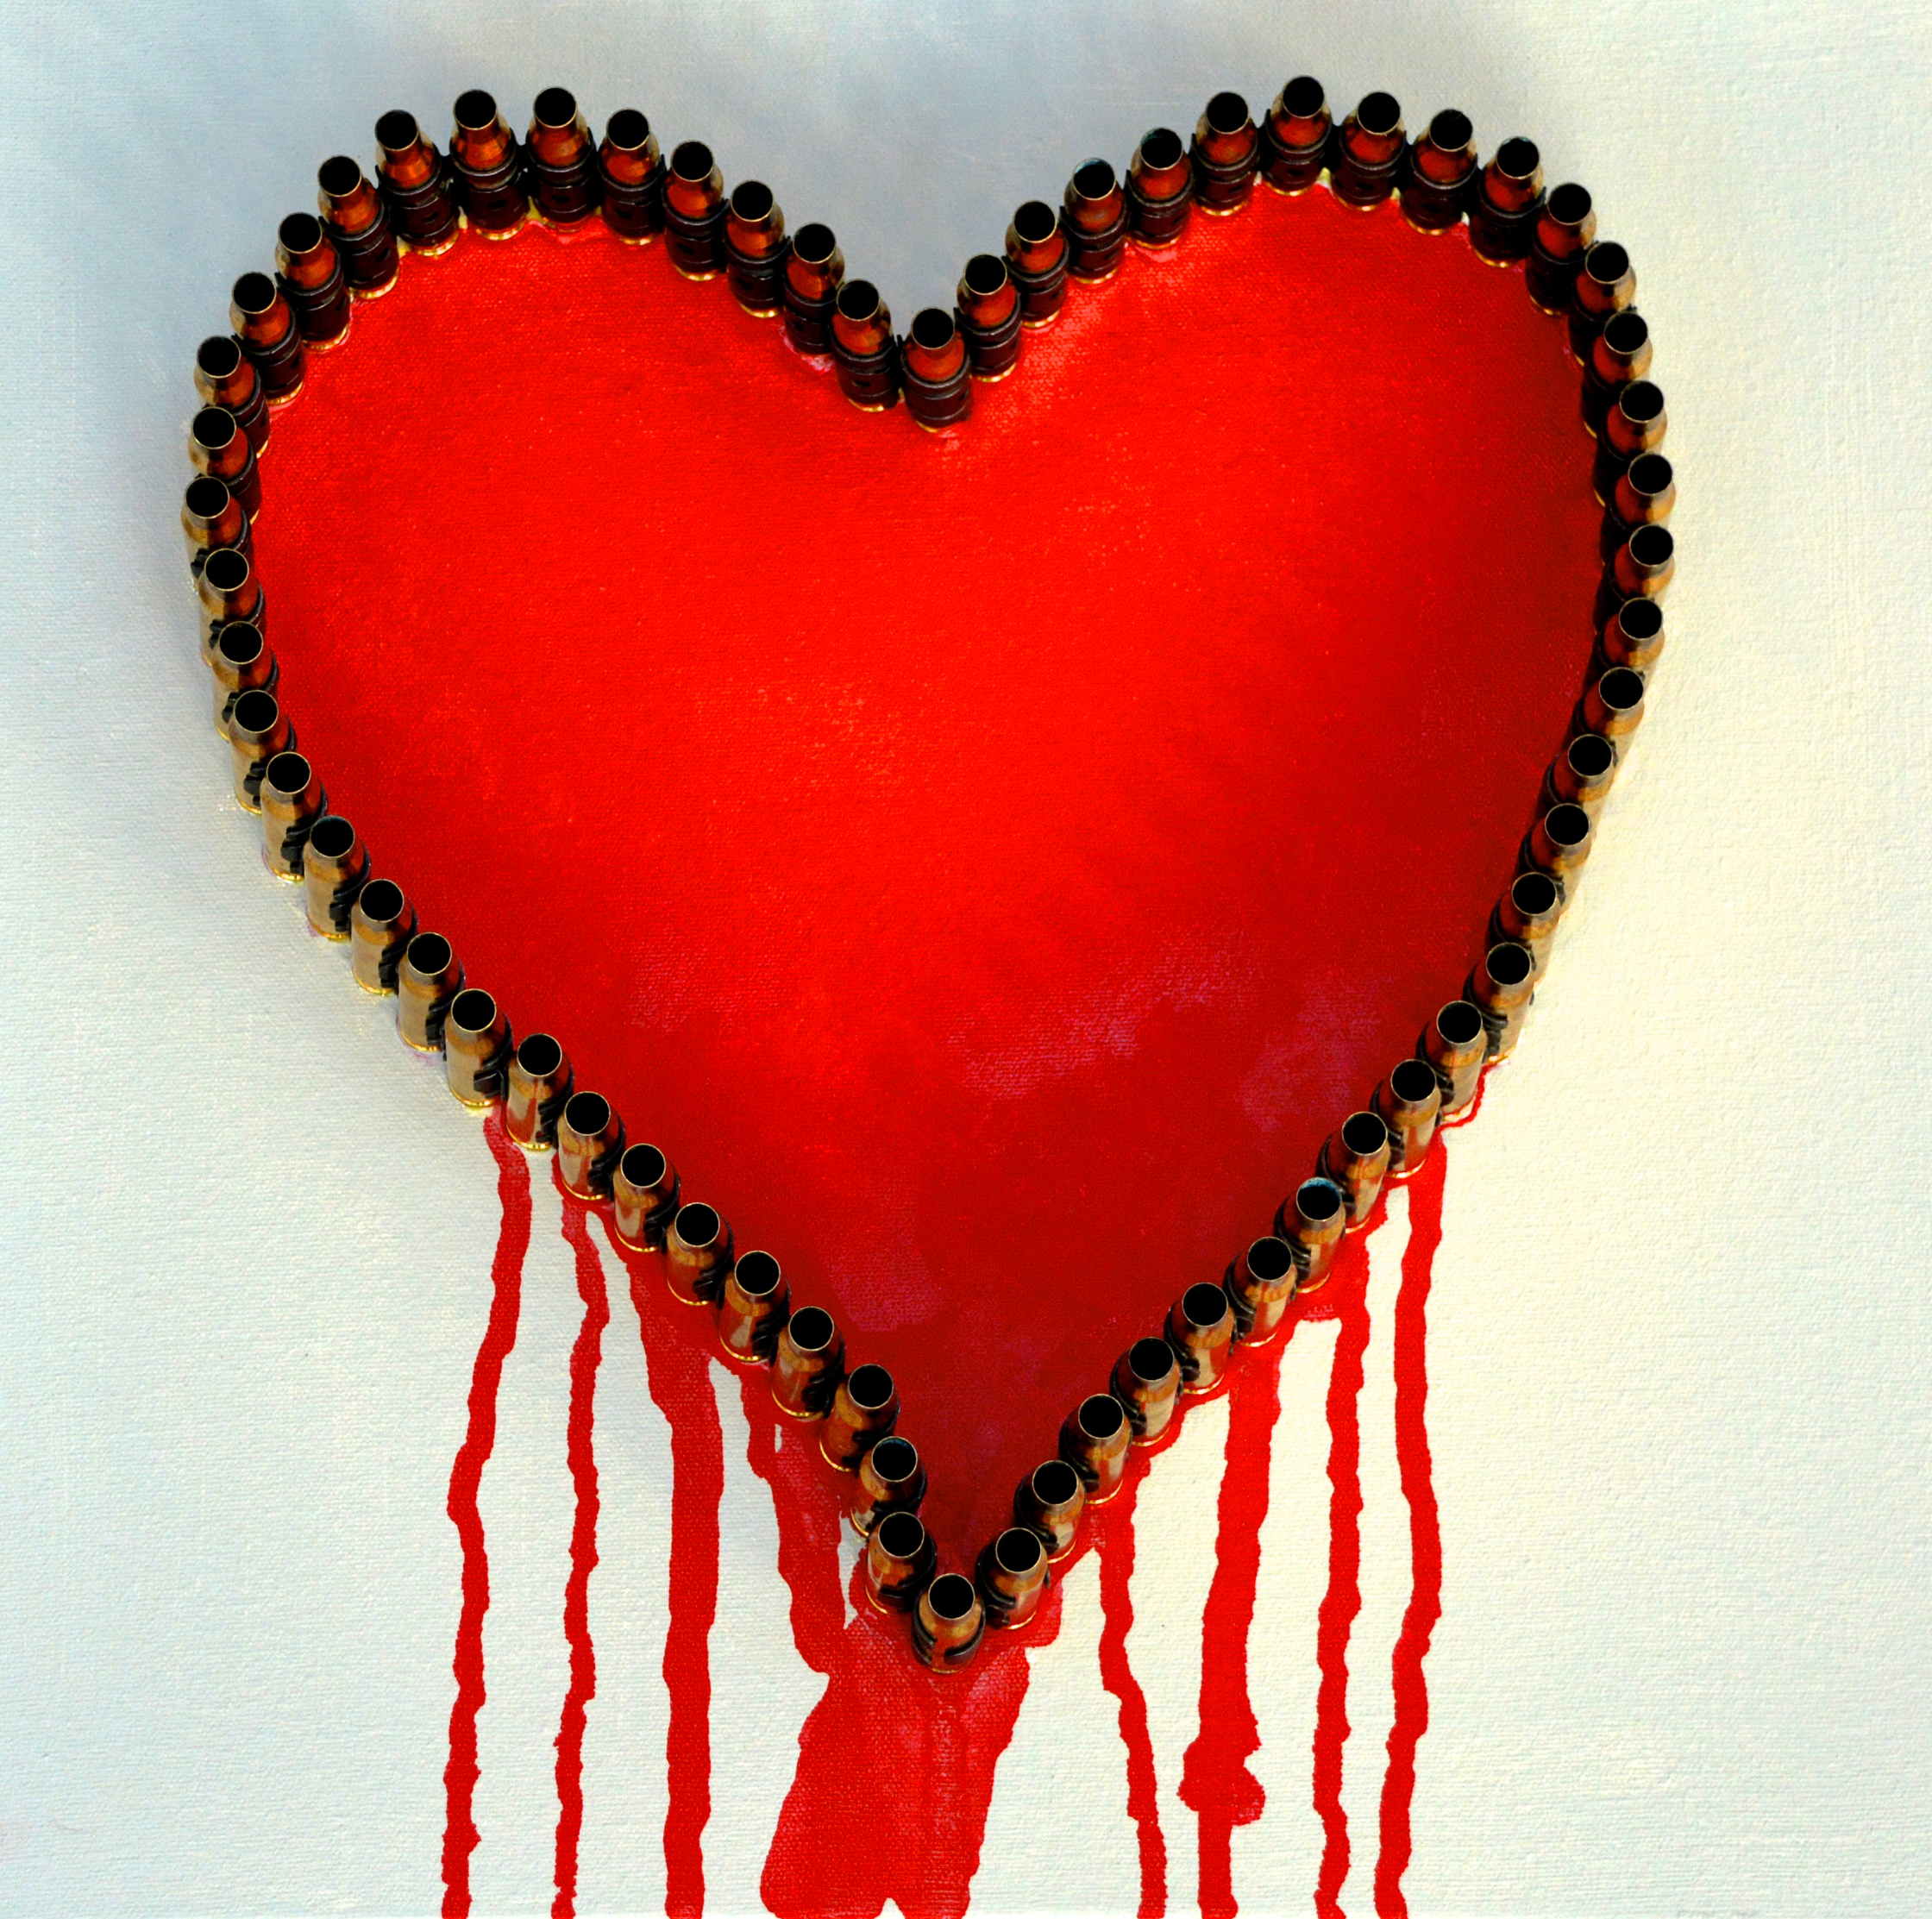 Bleeding heart1.jpg